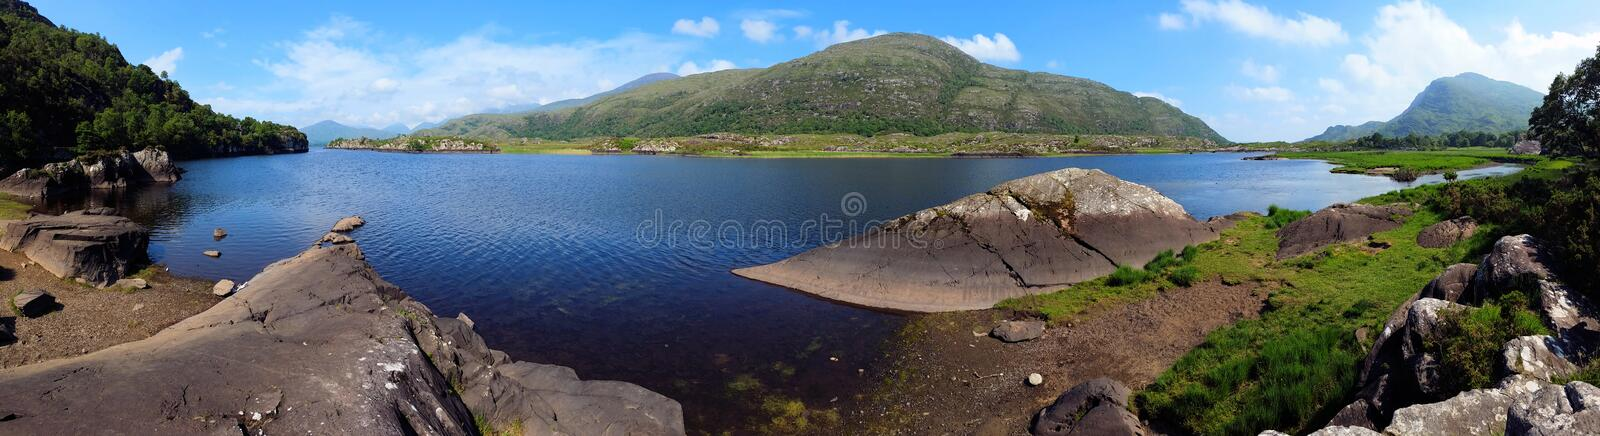 Panoramic view of lakes and mountains of Killarney National Park, Ring of Kerry, Ireland. Panoramic view of Upper Lake and mountains of Killarney National Park royalty free stock images